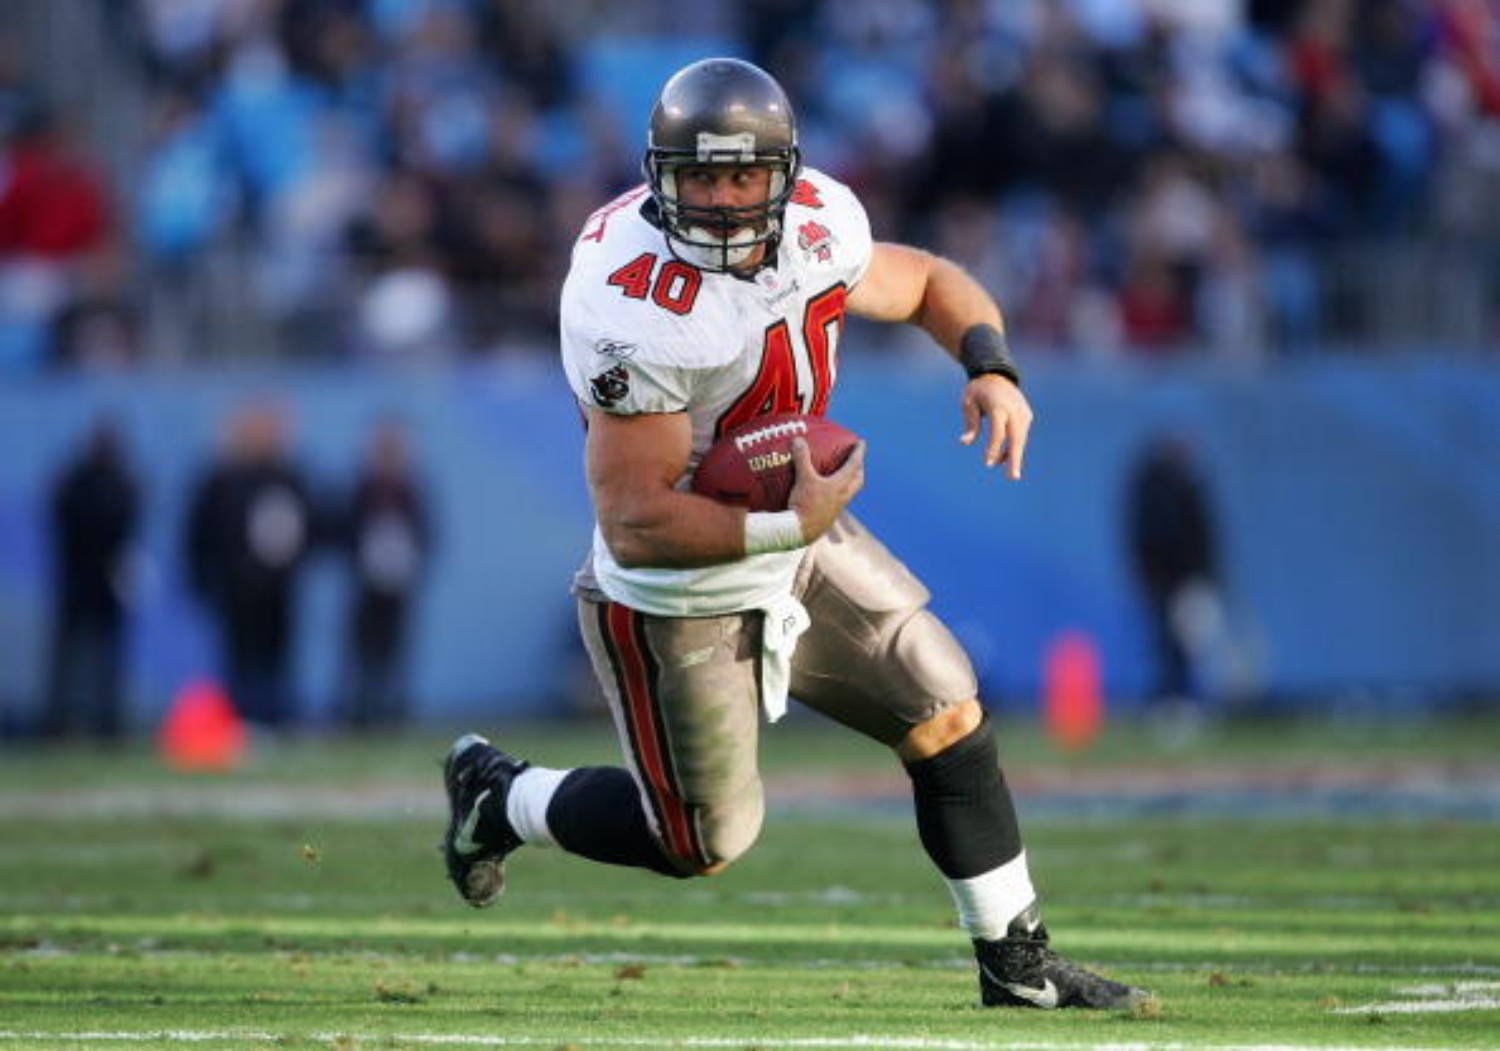 Mike Alstott had a successful career with the Tampa Bay Buccaneers